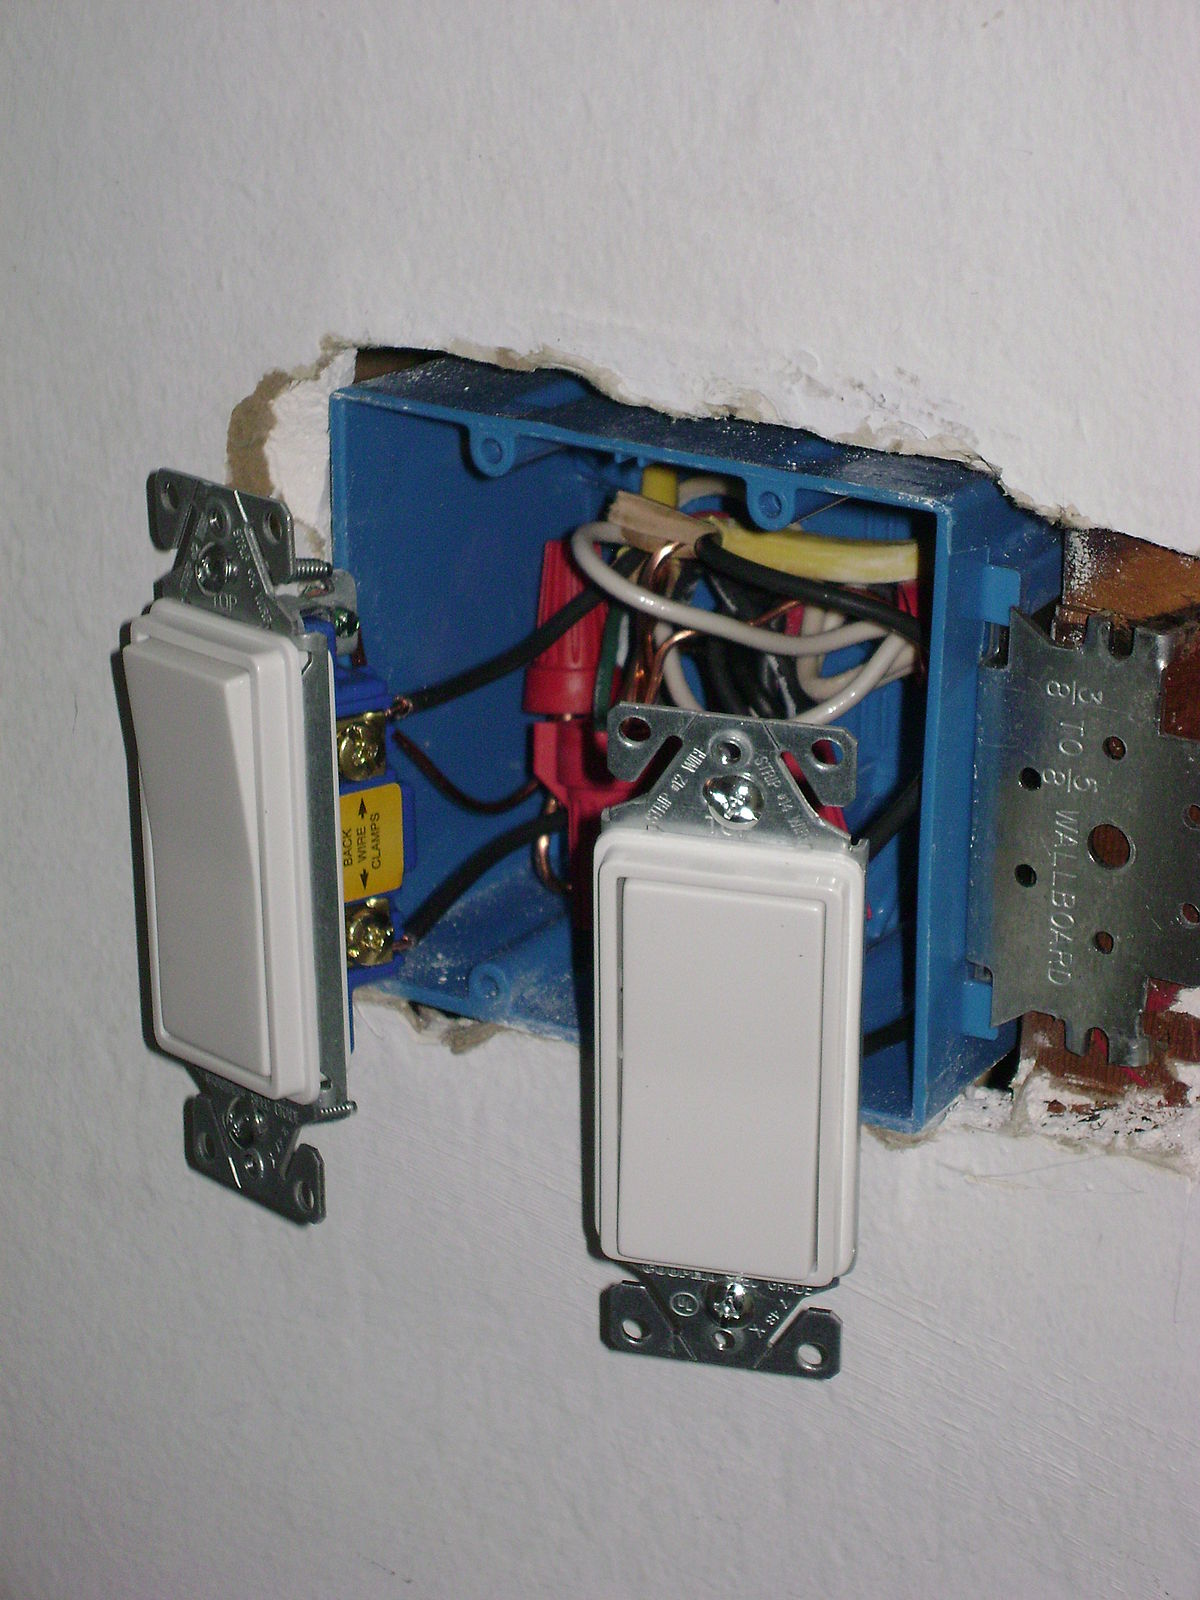 Light Switch Wikipedia Reverse Network Wall Jack Wiring